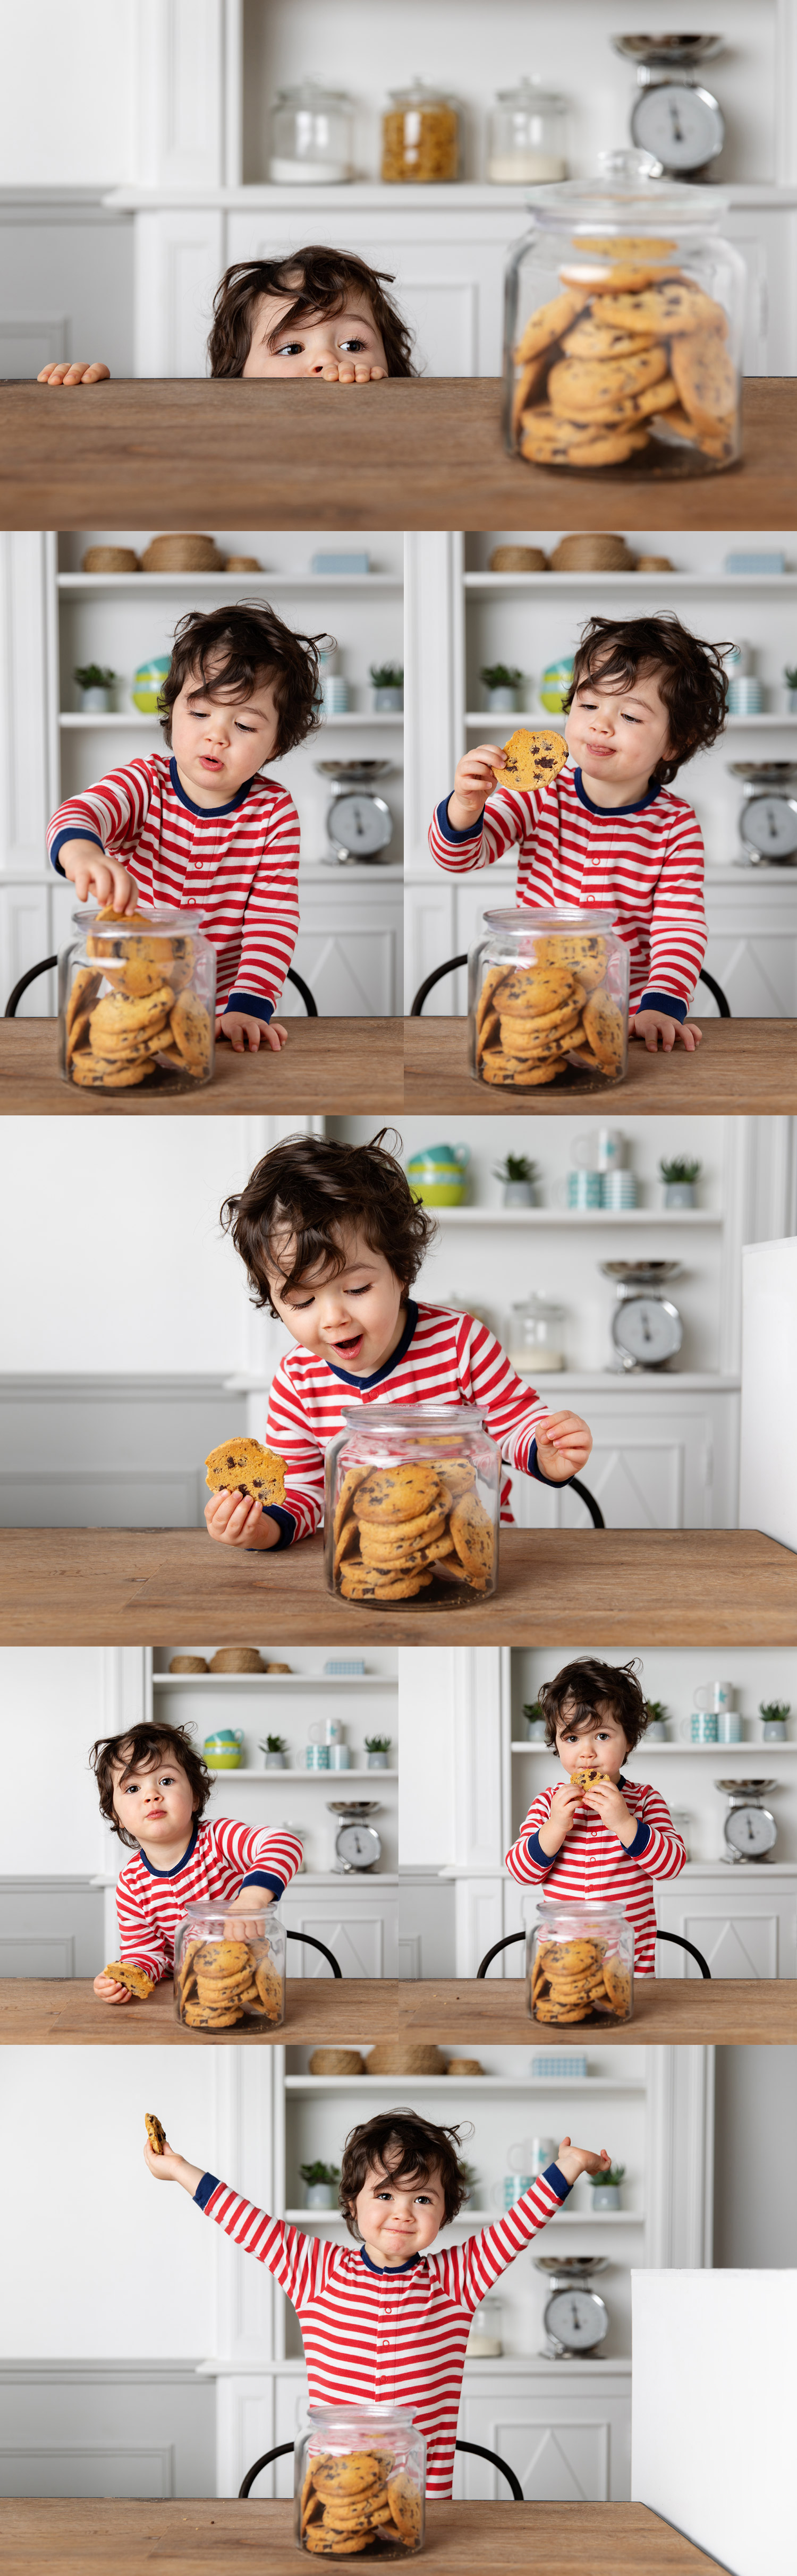 Cute toddler stealing cookies from cookie jar by Lisa Tichané, advertising kids photographer